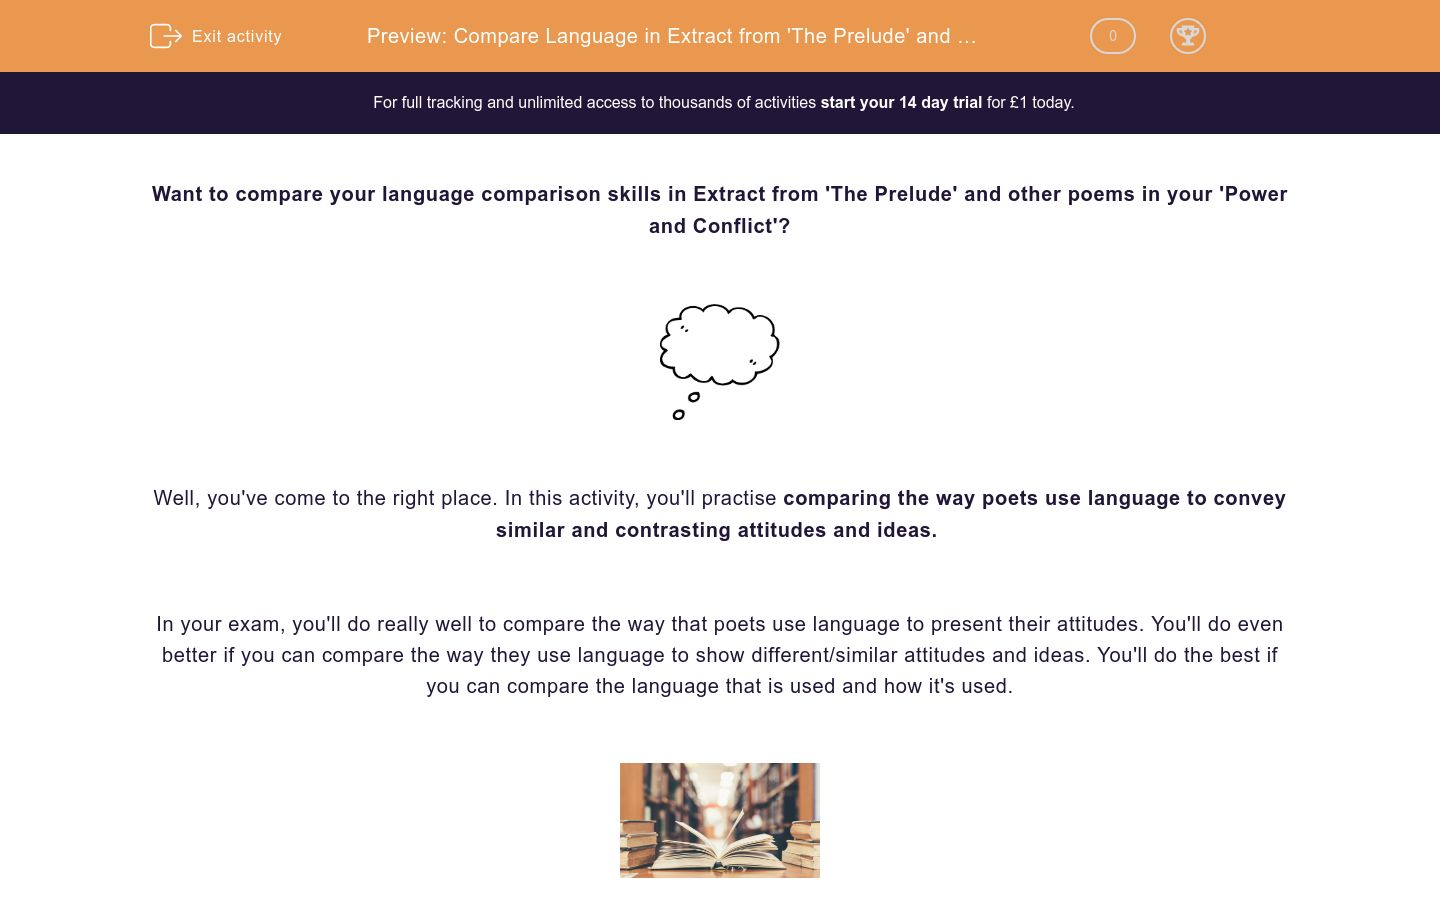 'Compare Language in Extract from 'The Prelude' and other Poems' worksheet